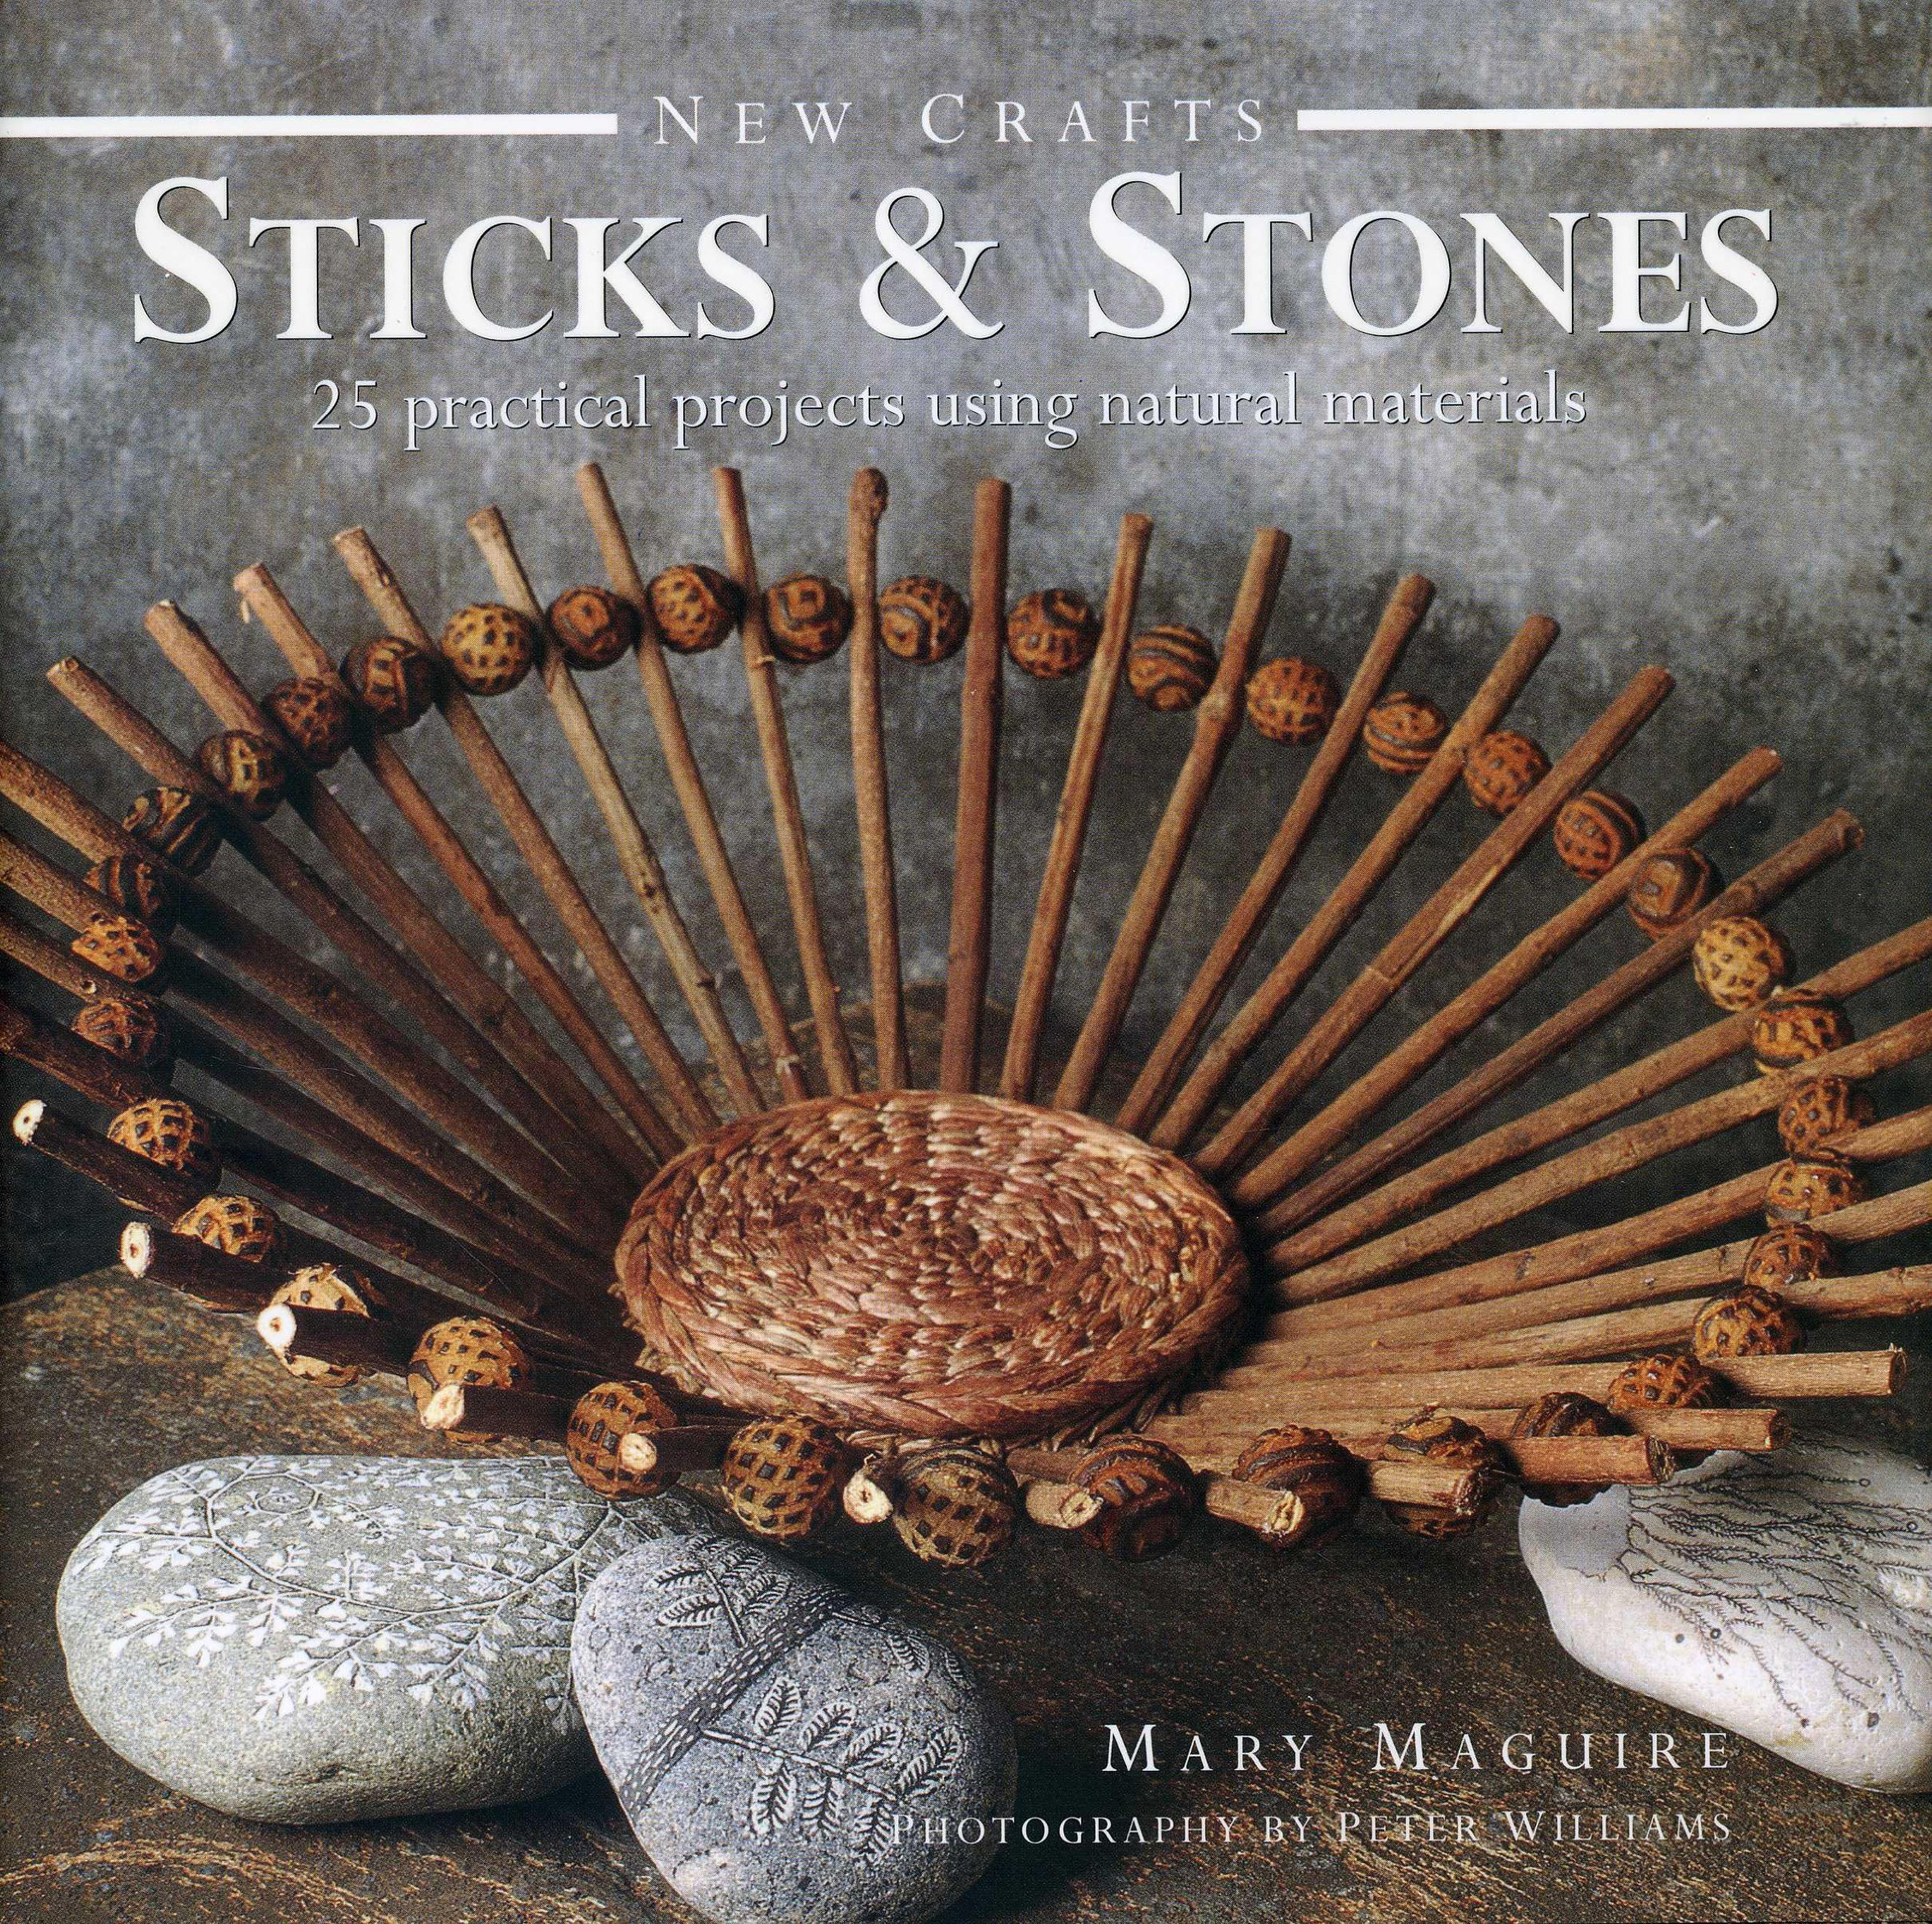 New Crafts Sticks Stones 25 Practical Projects Using Natural